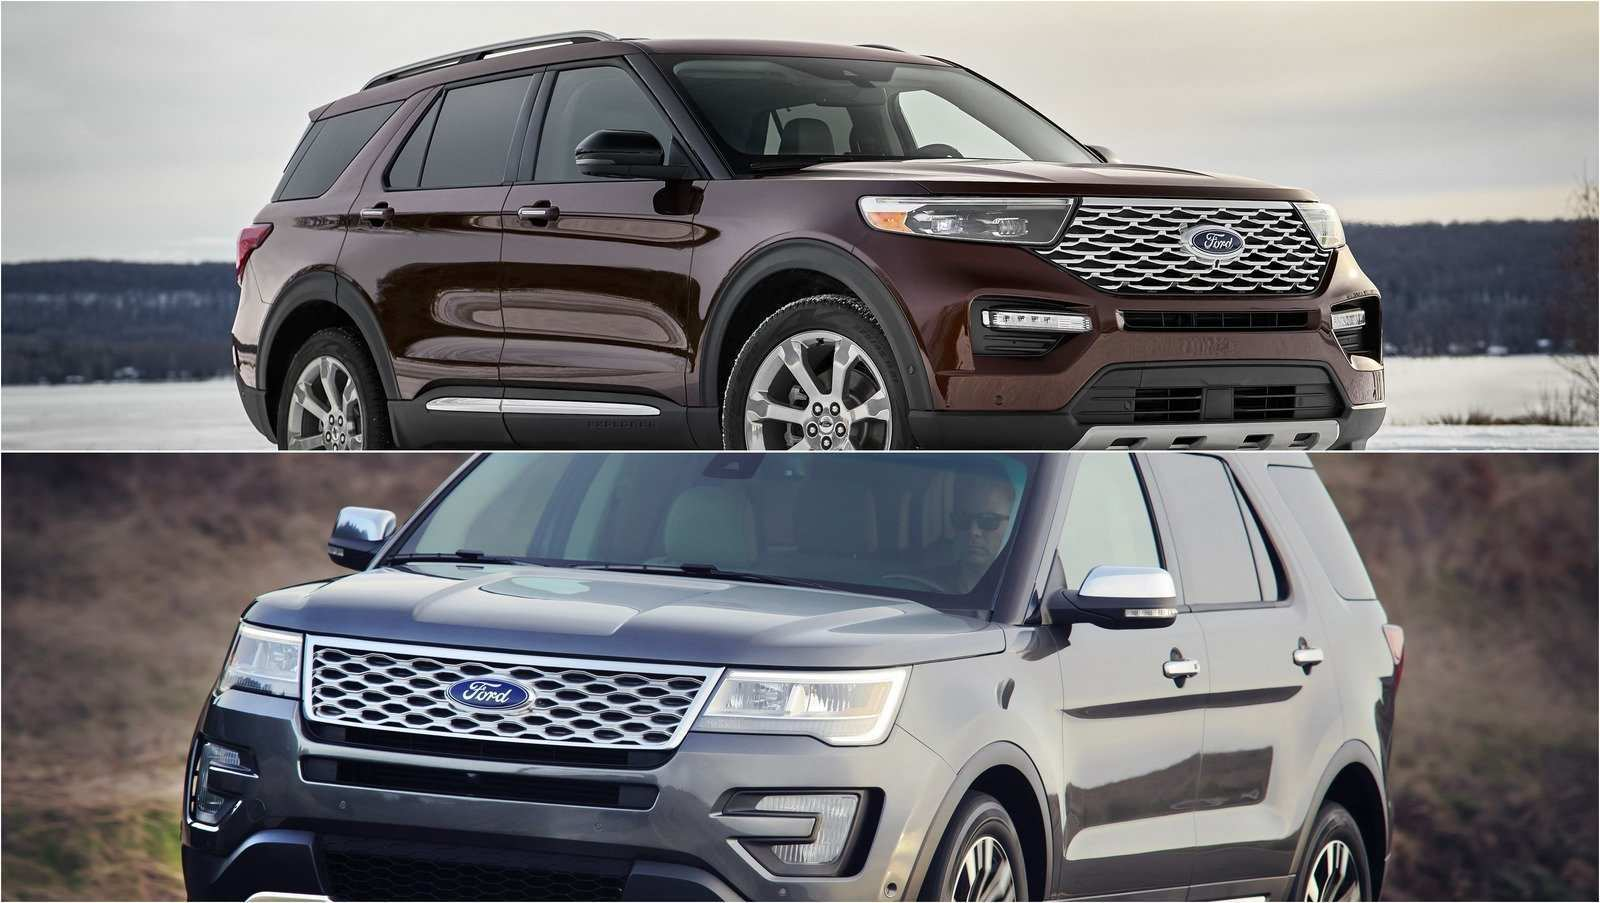 24 All New 2020 Ford Explorer Job 1 Style